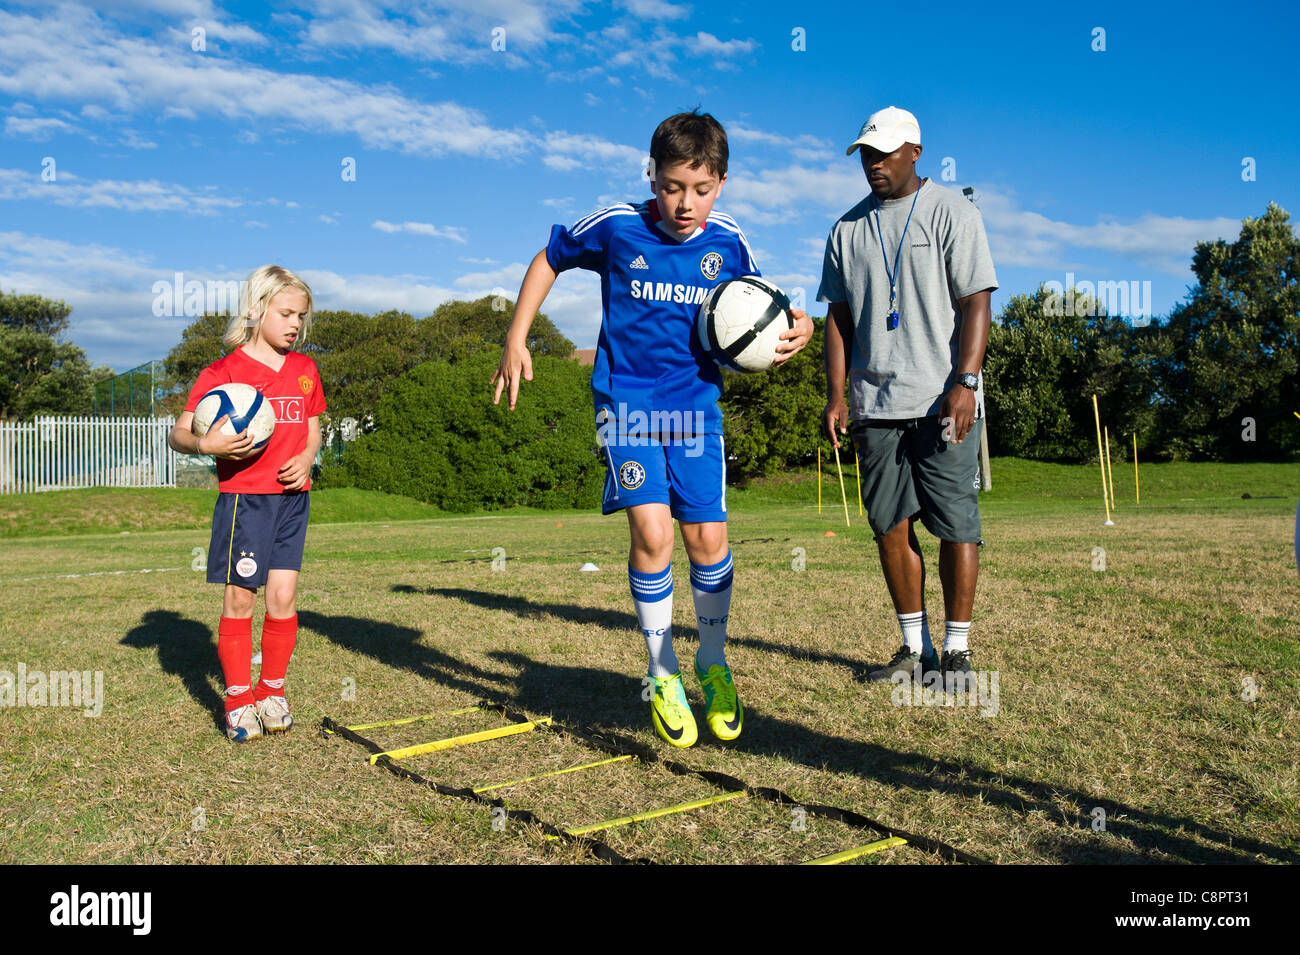 Junior football players practicing skills Cape Town South Africa - Stock Image